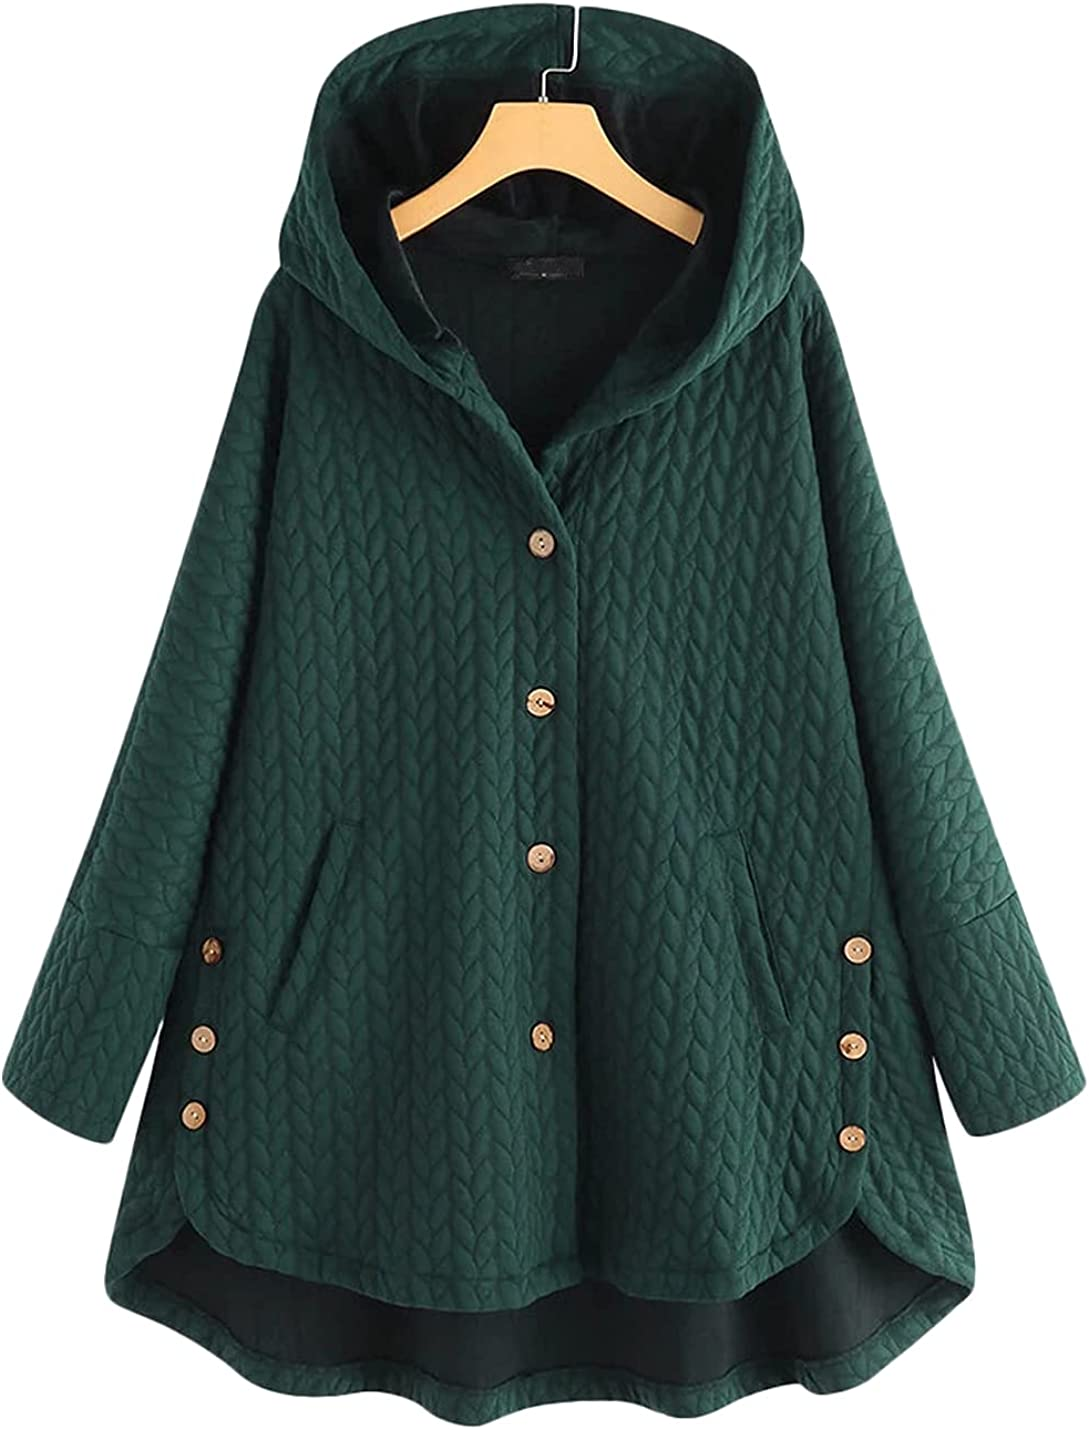 Jenkoon Women's Mid-Length Quilted Hooded Coat Warm Jackets Outerwear